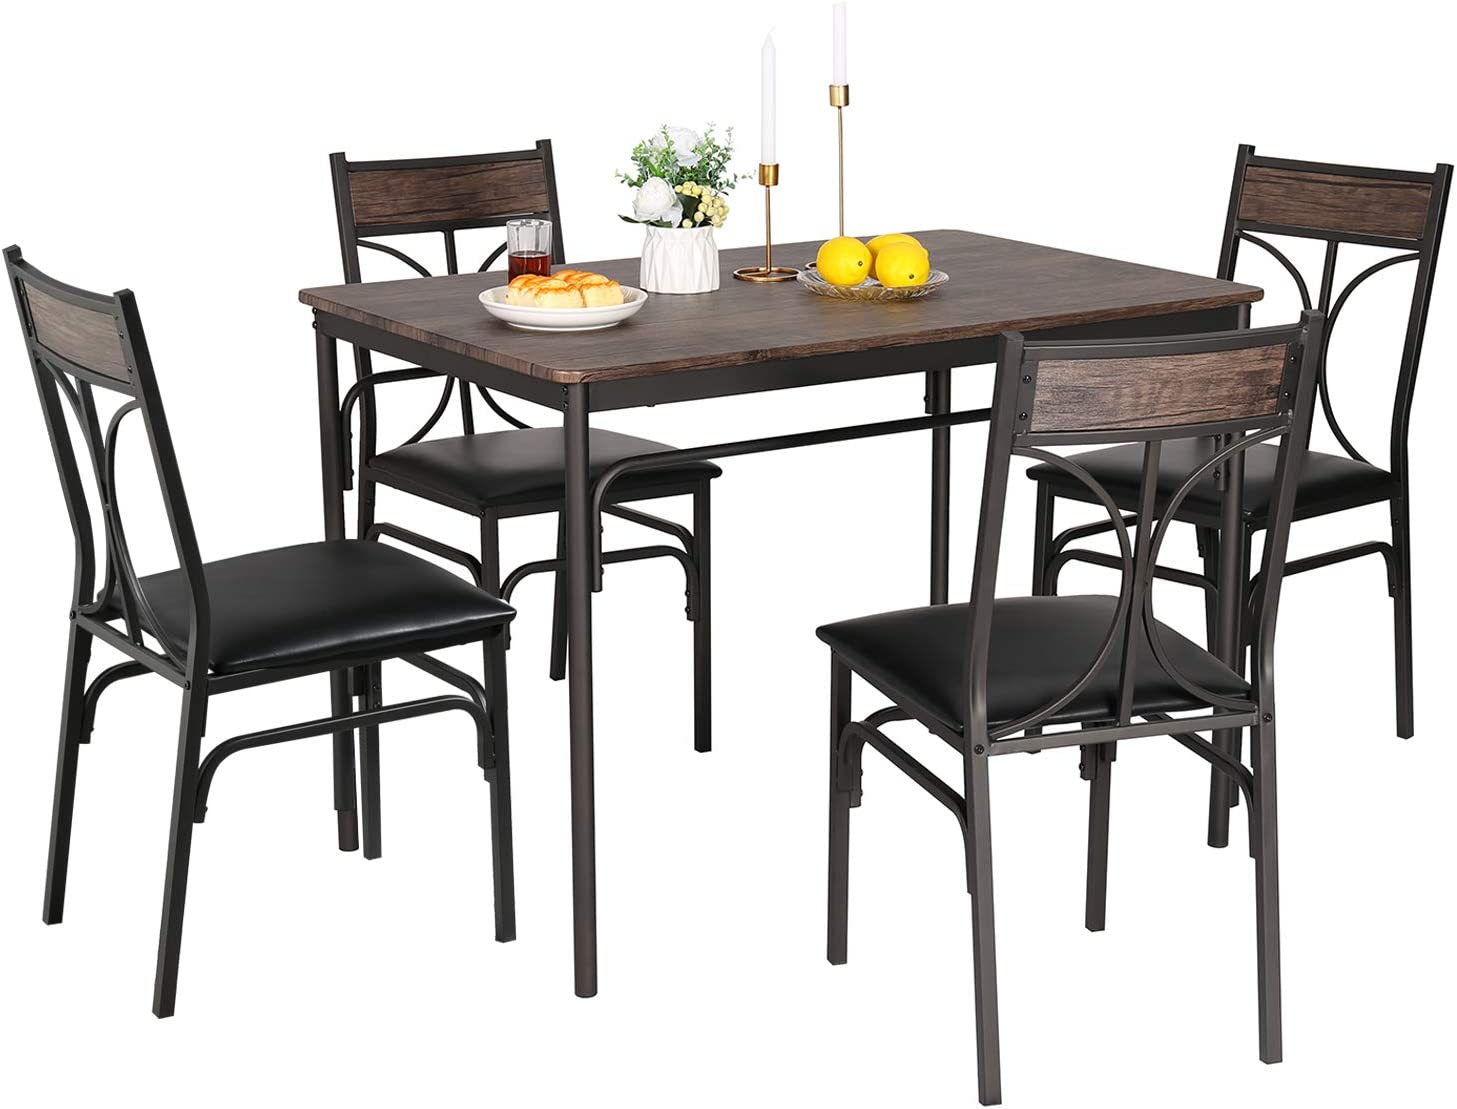 VECELO 5-Piece Indoor Modern Rectangular Selling Dining Max 88% OFF Set for Table Ki